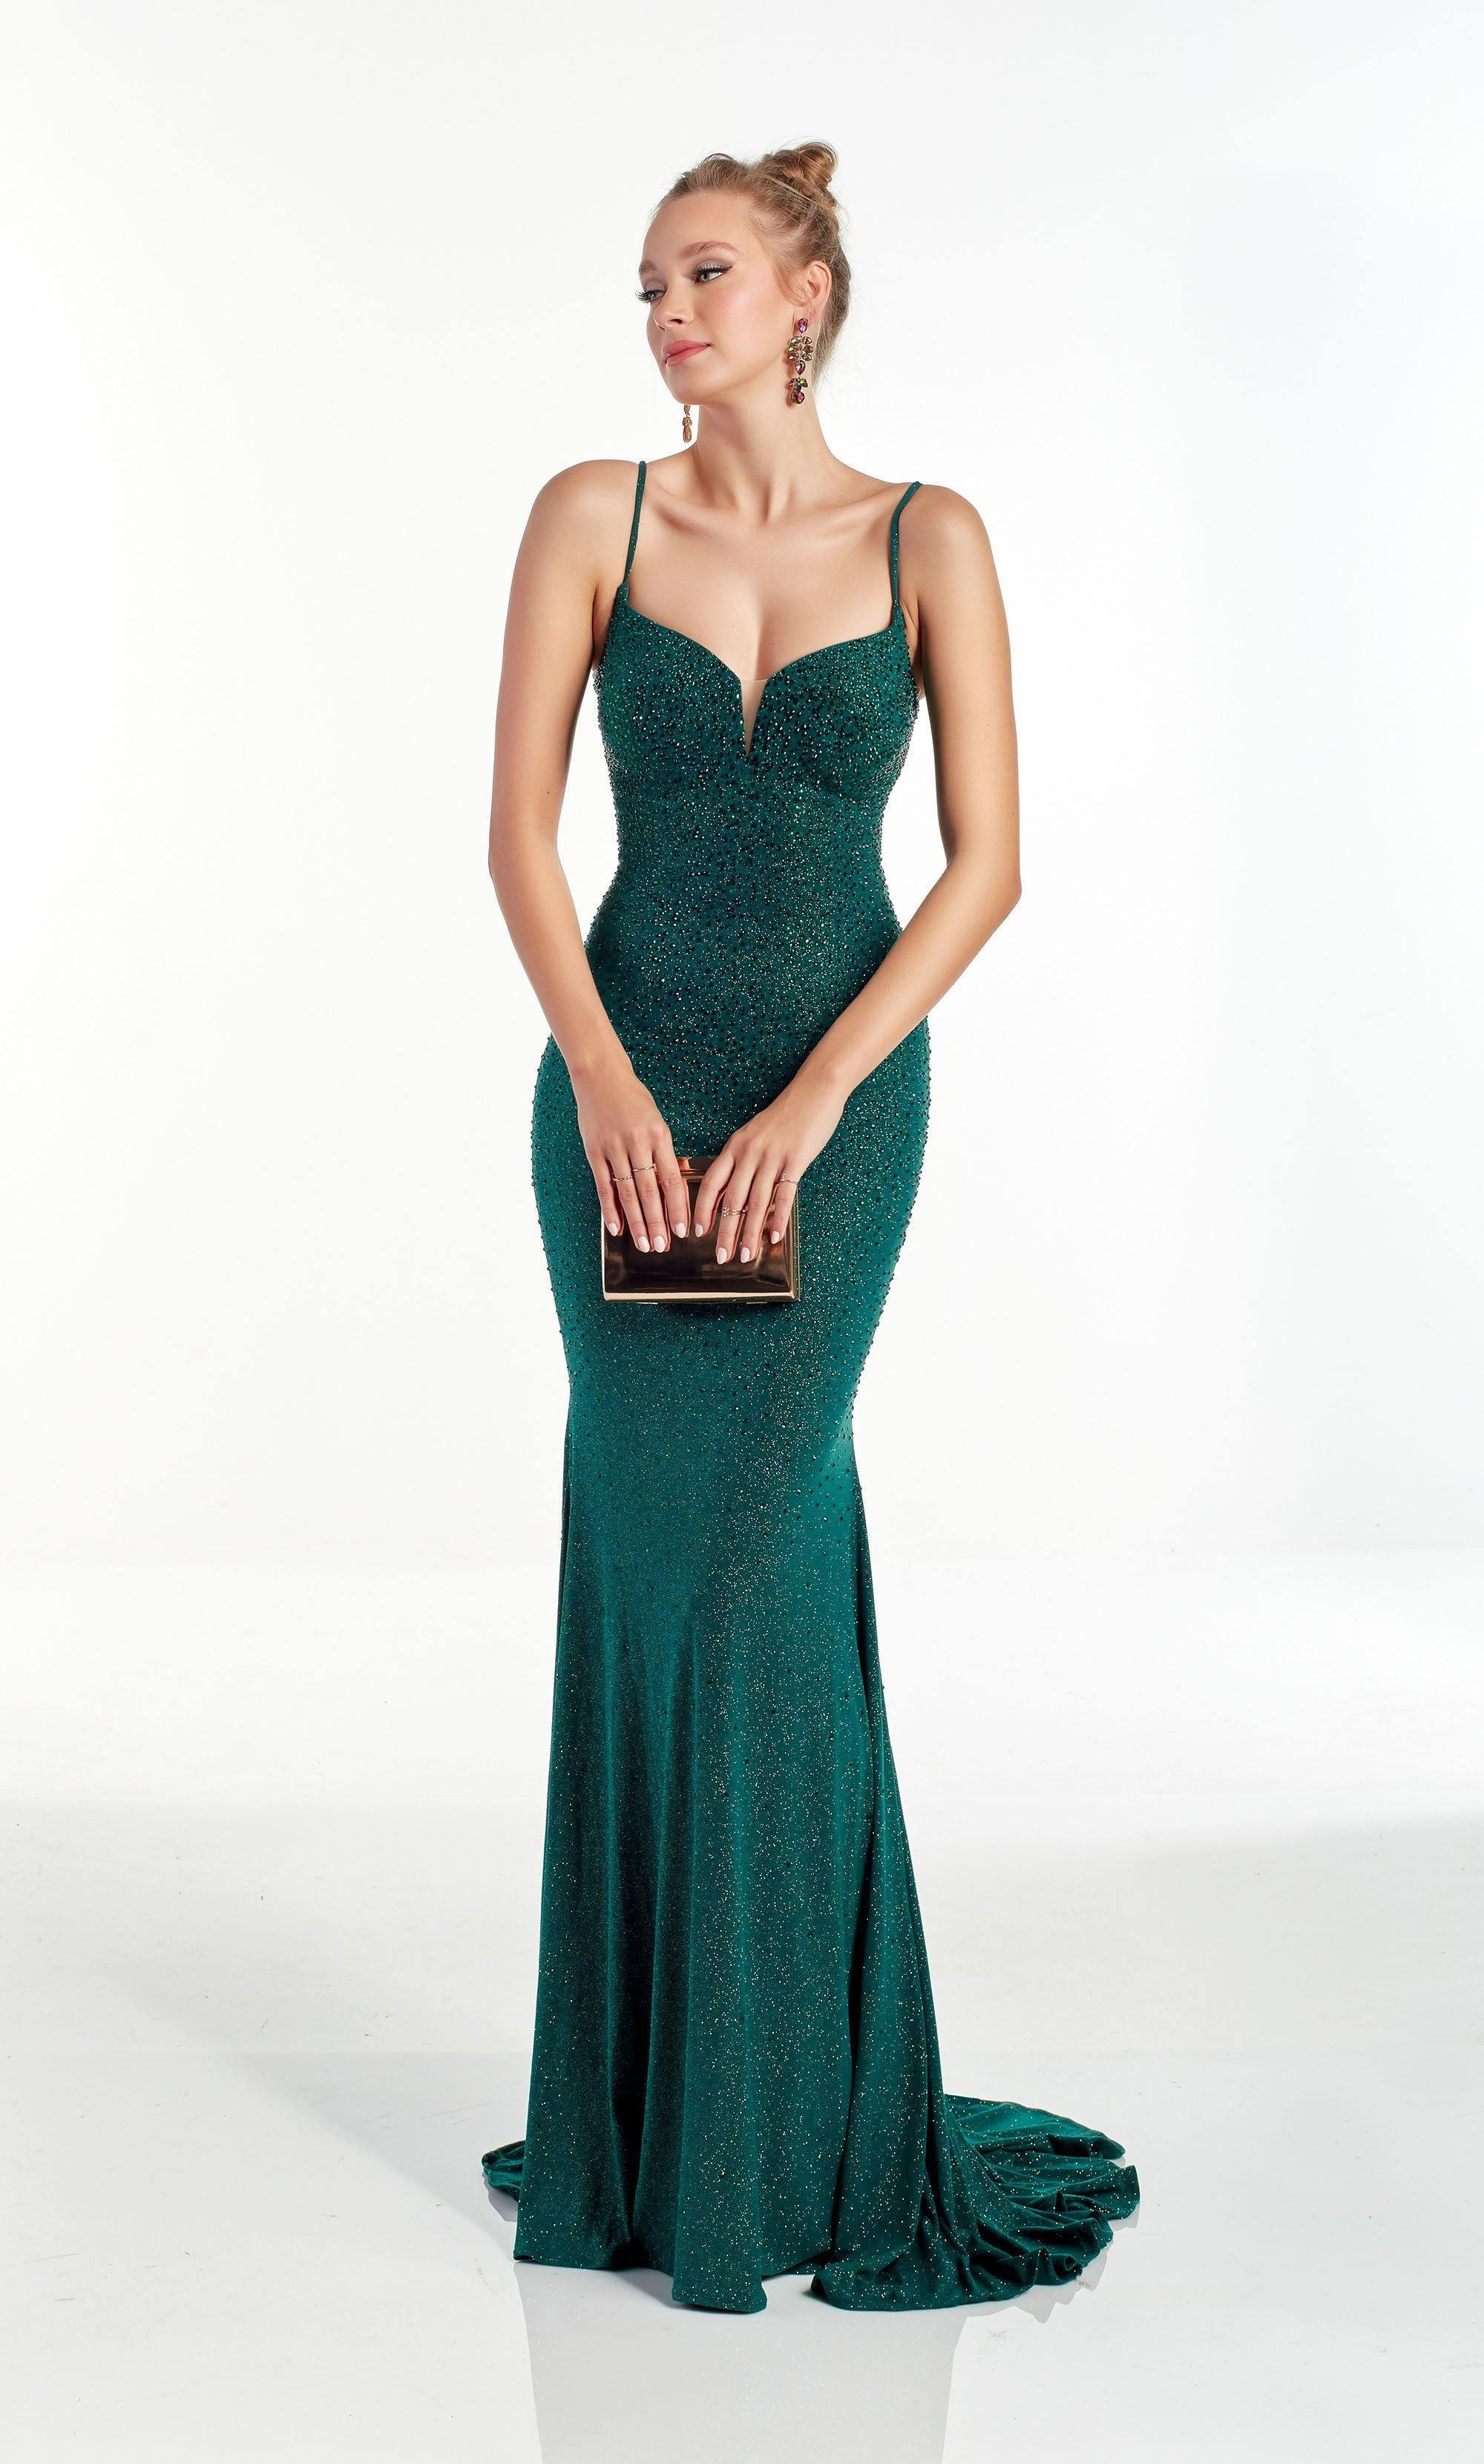 Emerald Green column evening dress with a sweetheart neckline